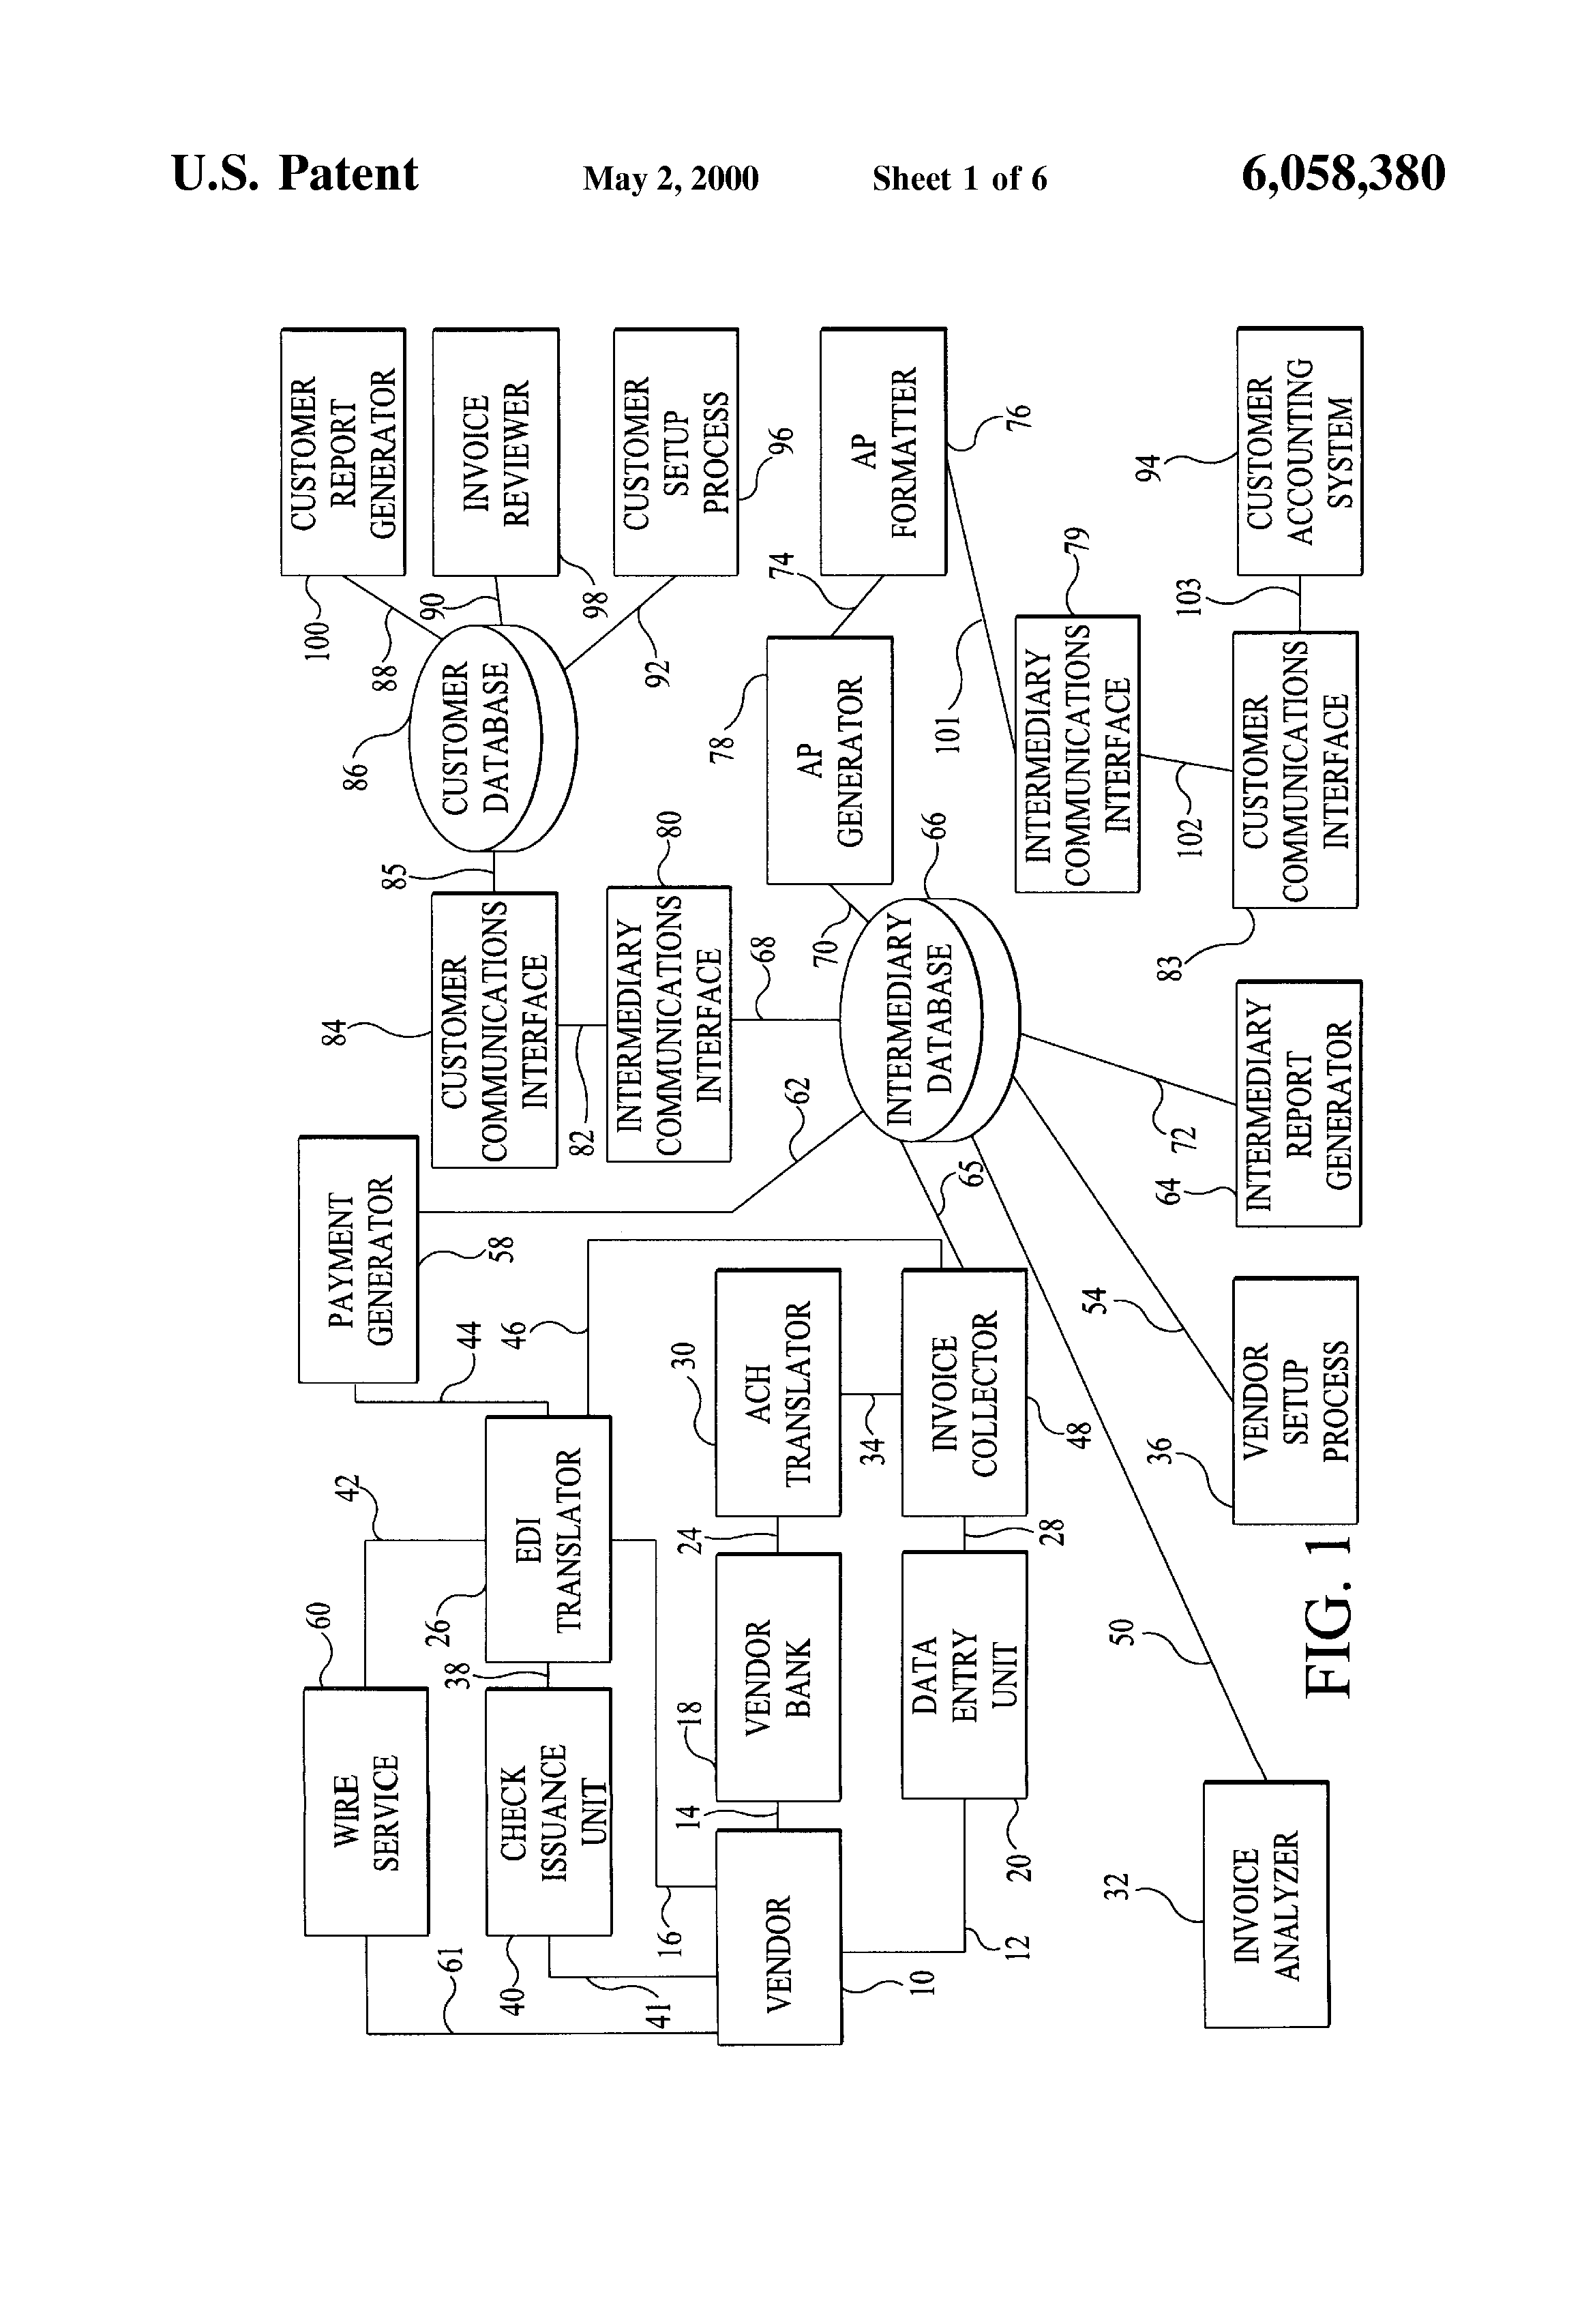 Google Invoice Word Patent Us  System And Method For Electronically Processing  Invoice Word Template Excel with Dealer Invoice By Vin Word Patent Drawing On Receipt Of Payment Excel